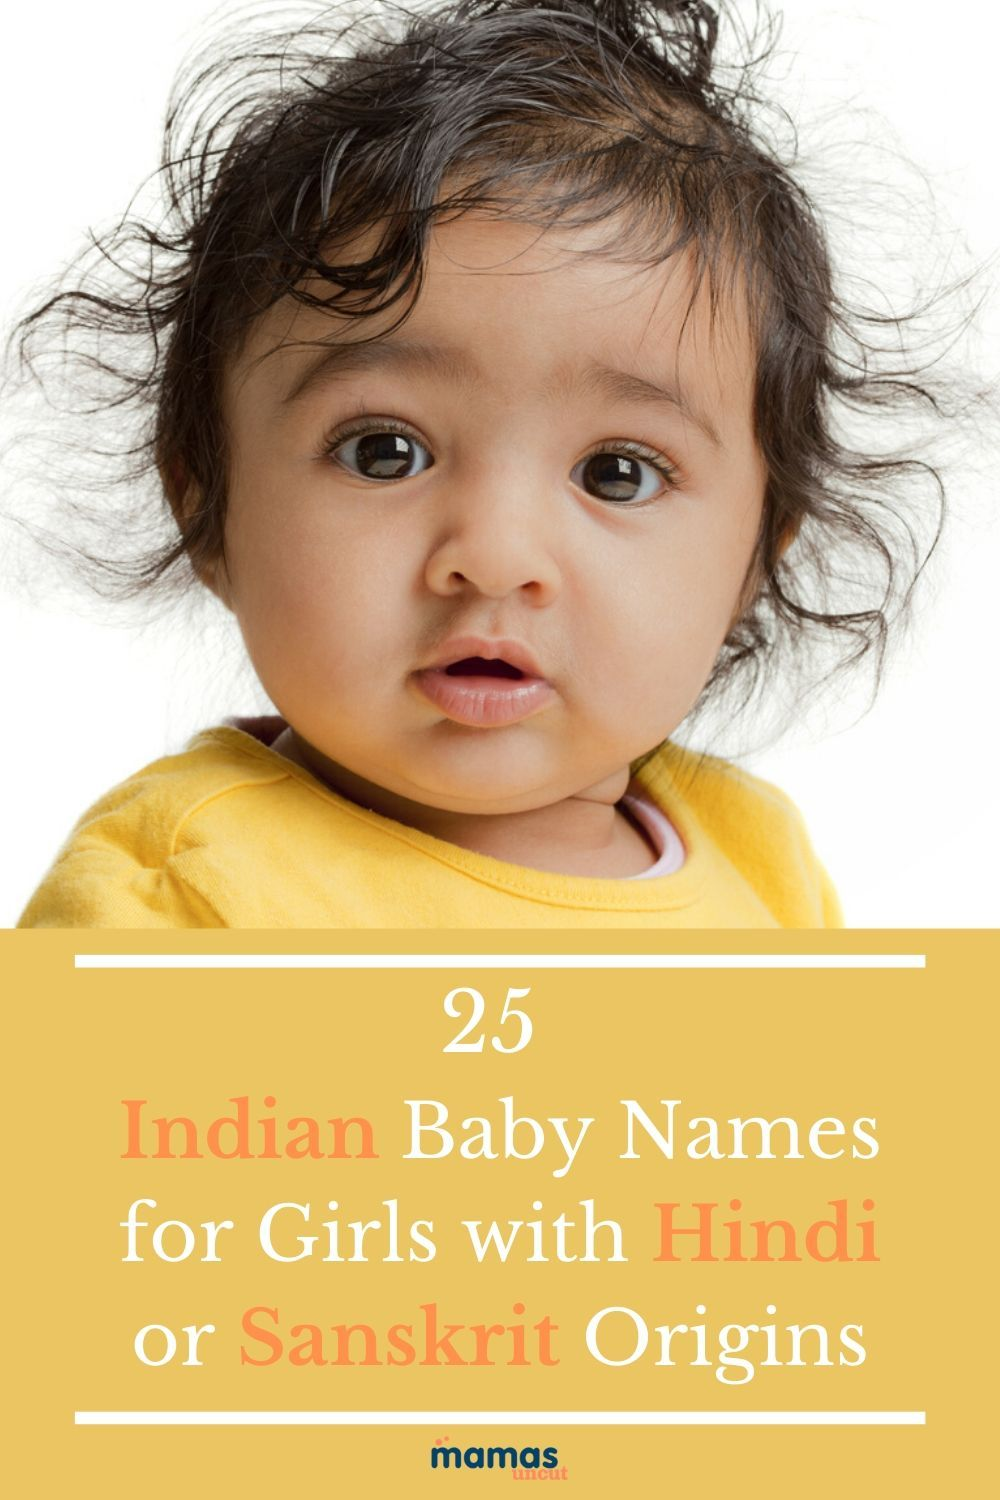 25 Indian Baby Names for Girls with Hindi or Sanskrit Origin  Indian baby names draw on a rich tradition and the Hindi language. Beloved names for girls may be inspired by nature or religious beliefs.  #Hindibabynames #babynames #girlnames #internationalnames